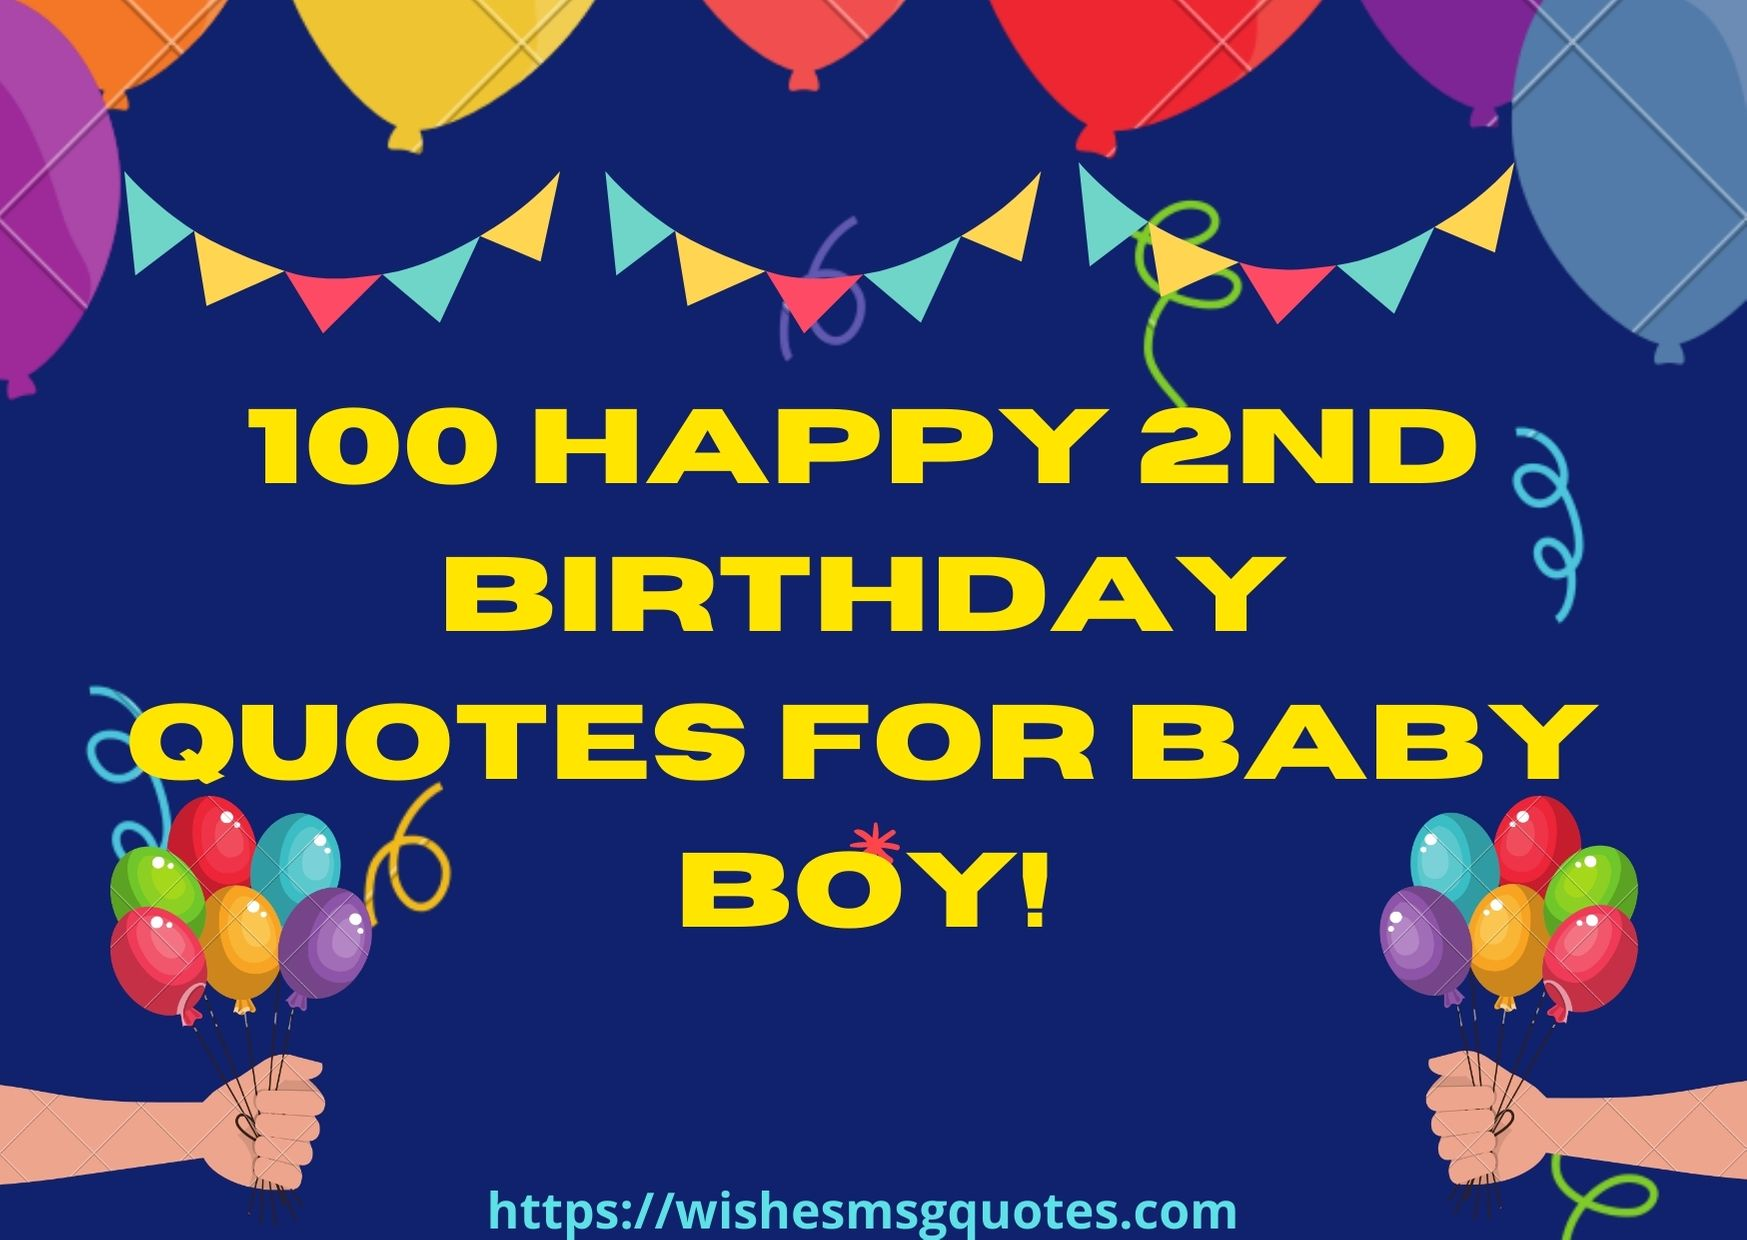 100 Happy 2nd Birthday Quotes For Baby Boy